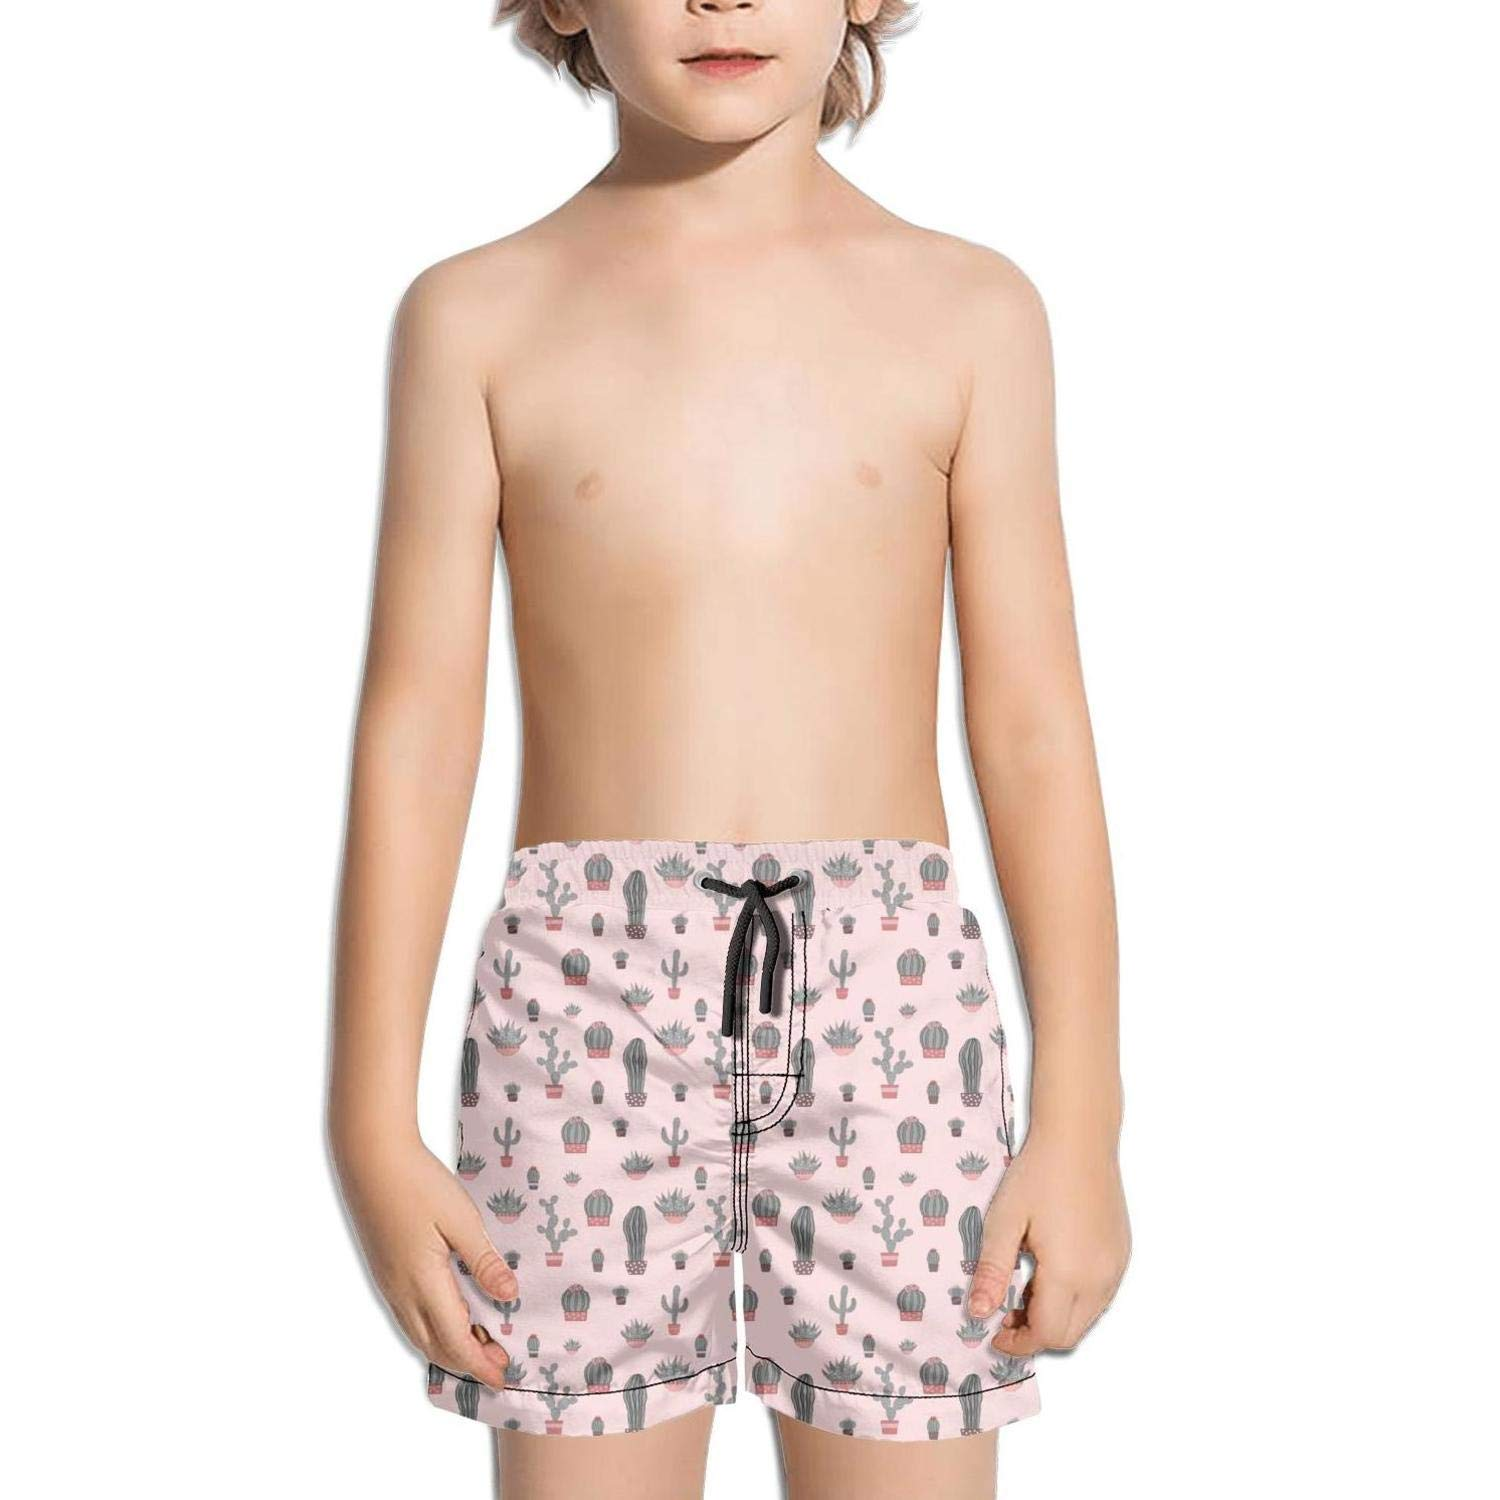 lidongsing Cute Potted Little Cactuses Boys Fast Drying Beach Swim Trunks Sports Swim Board Shorts